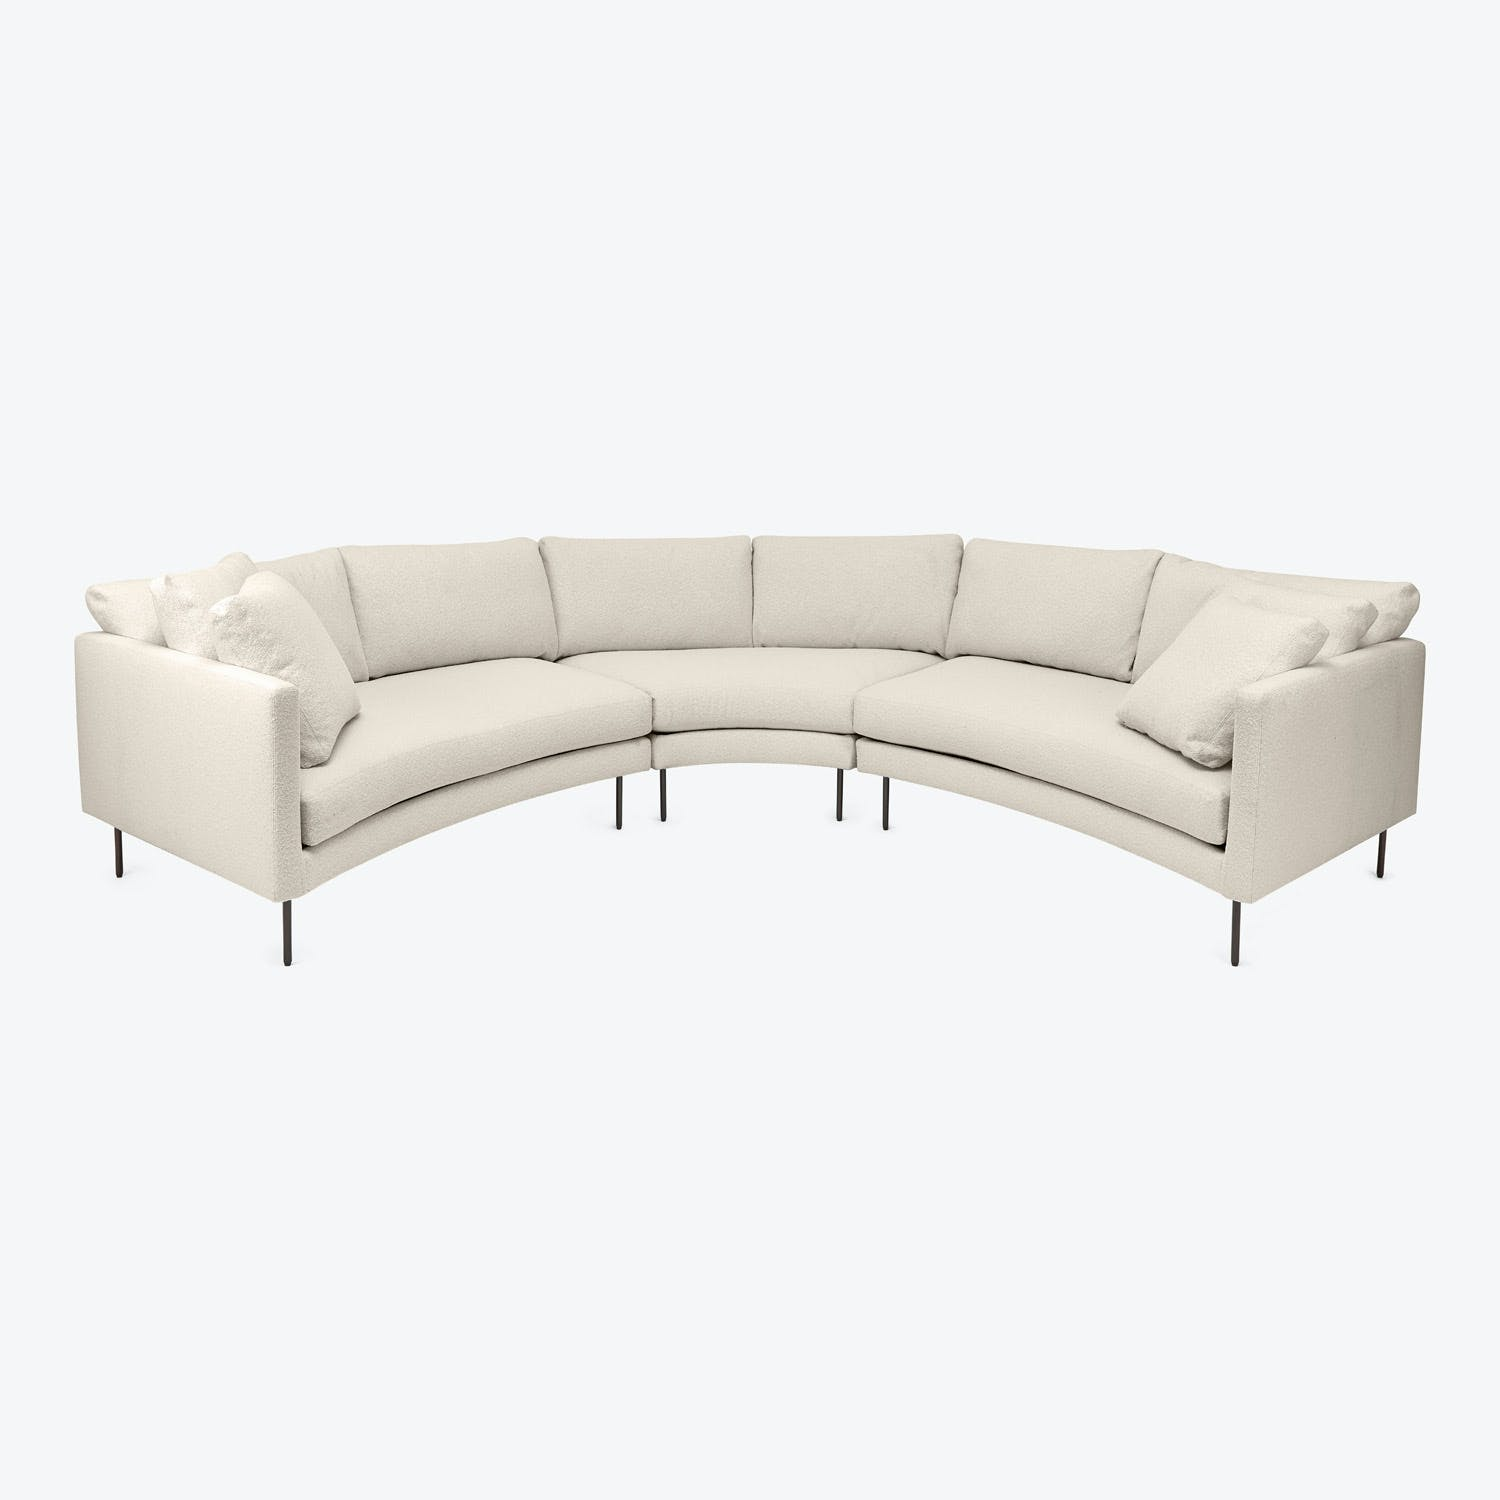 Product Image - Slice Curved Sectional